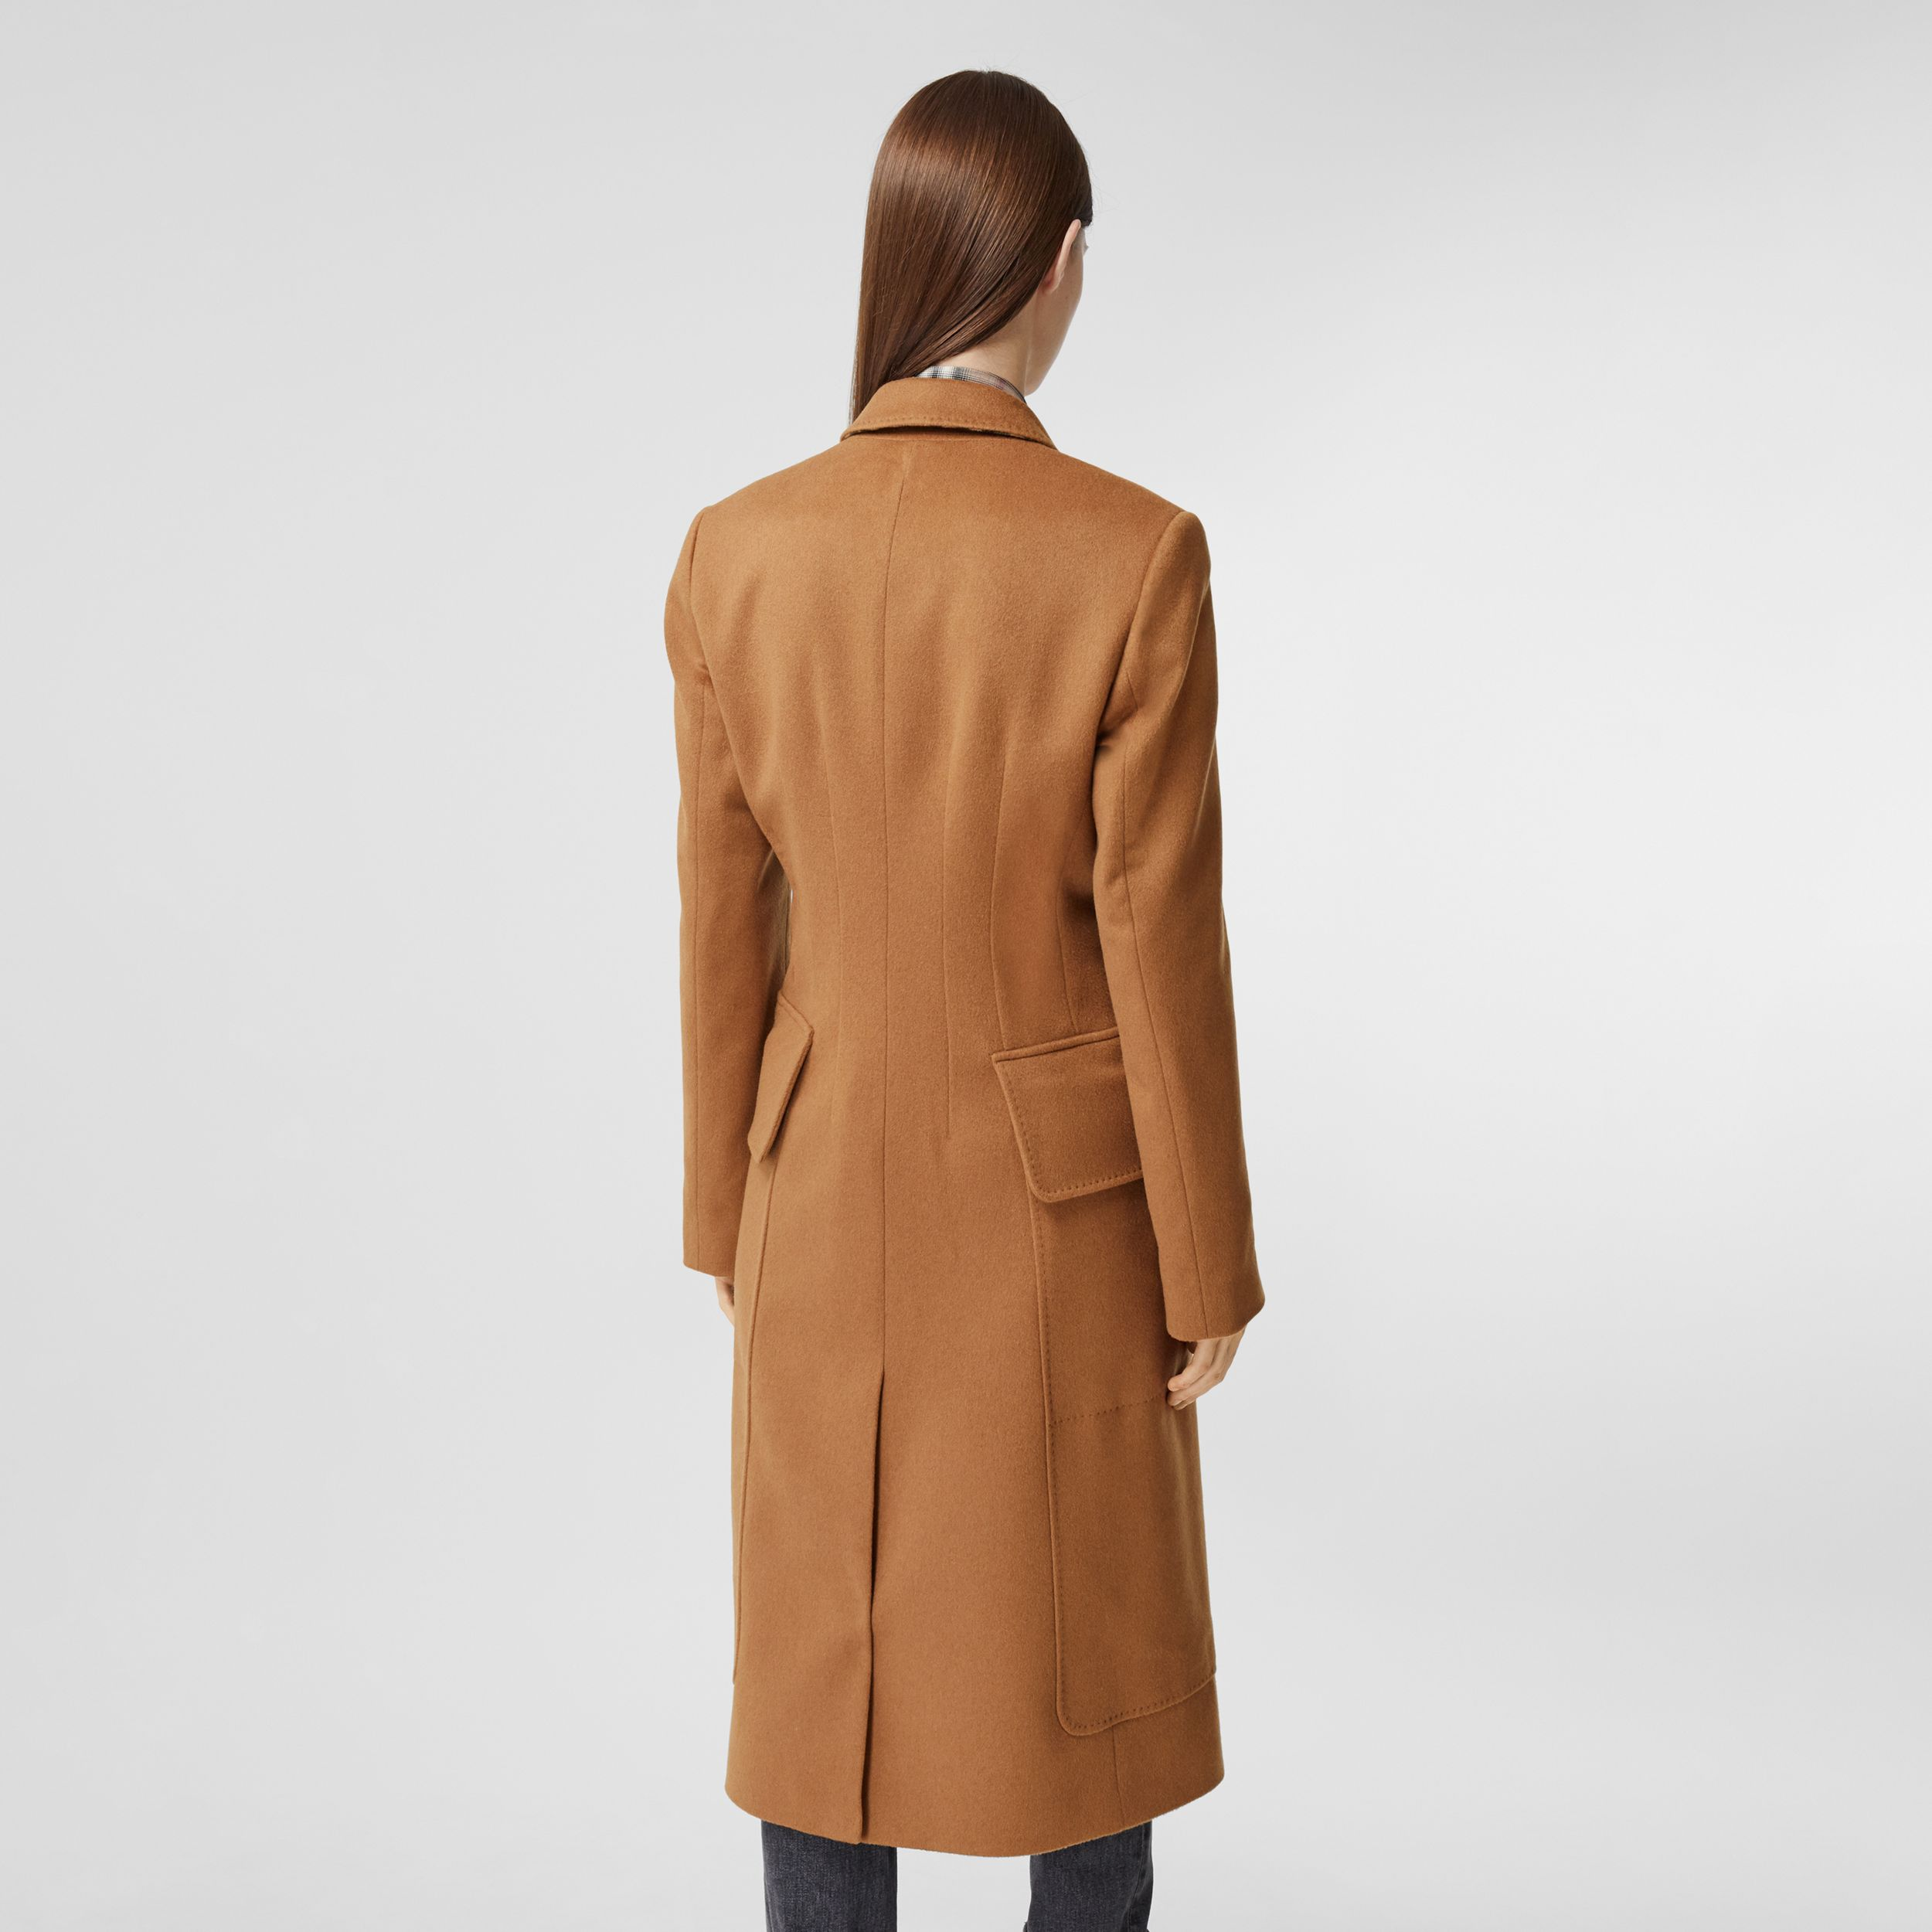 Cashmere Tailored Coat in Bronze - Women | Burberry - 3